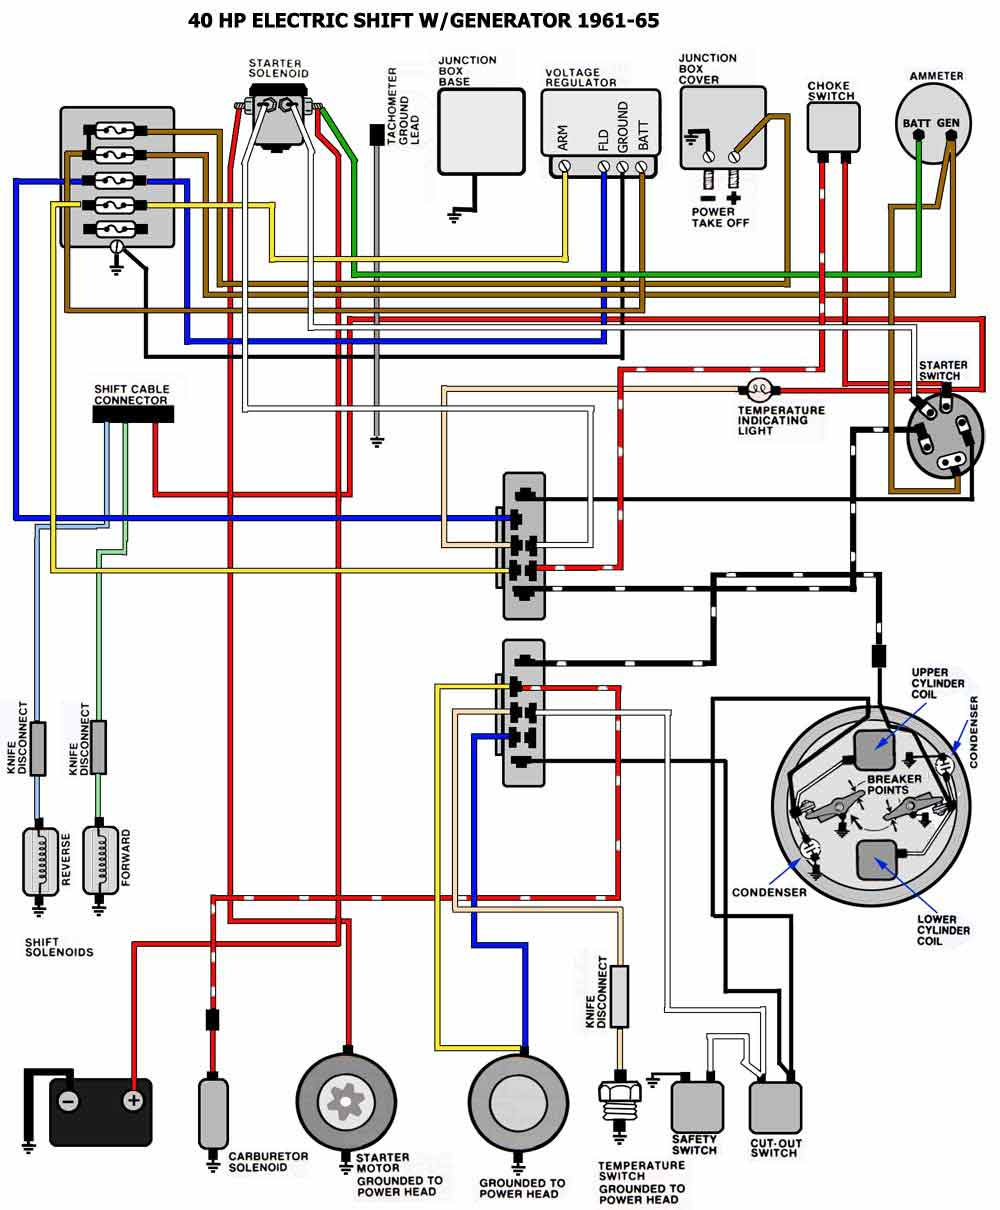 2009 Mercury Mariner Wiring Diagram Schematic Diagrams 100hp Wire Simple Schema 2006 60 Hp Outboard